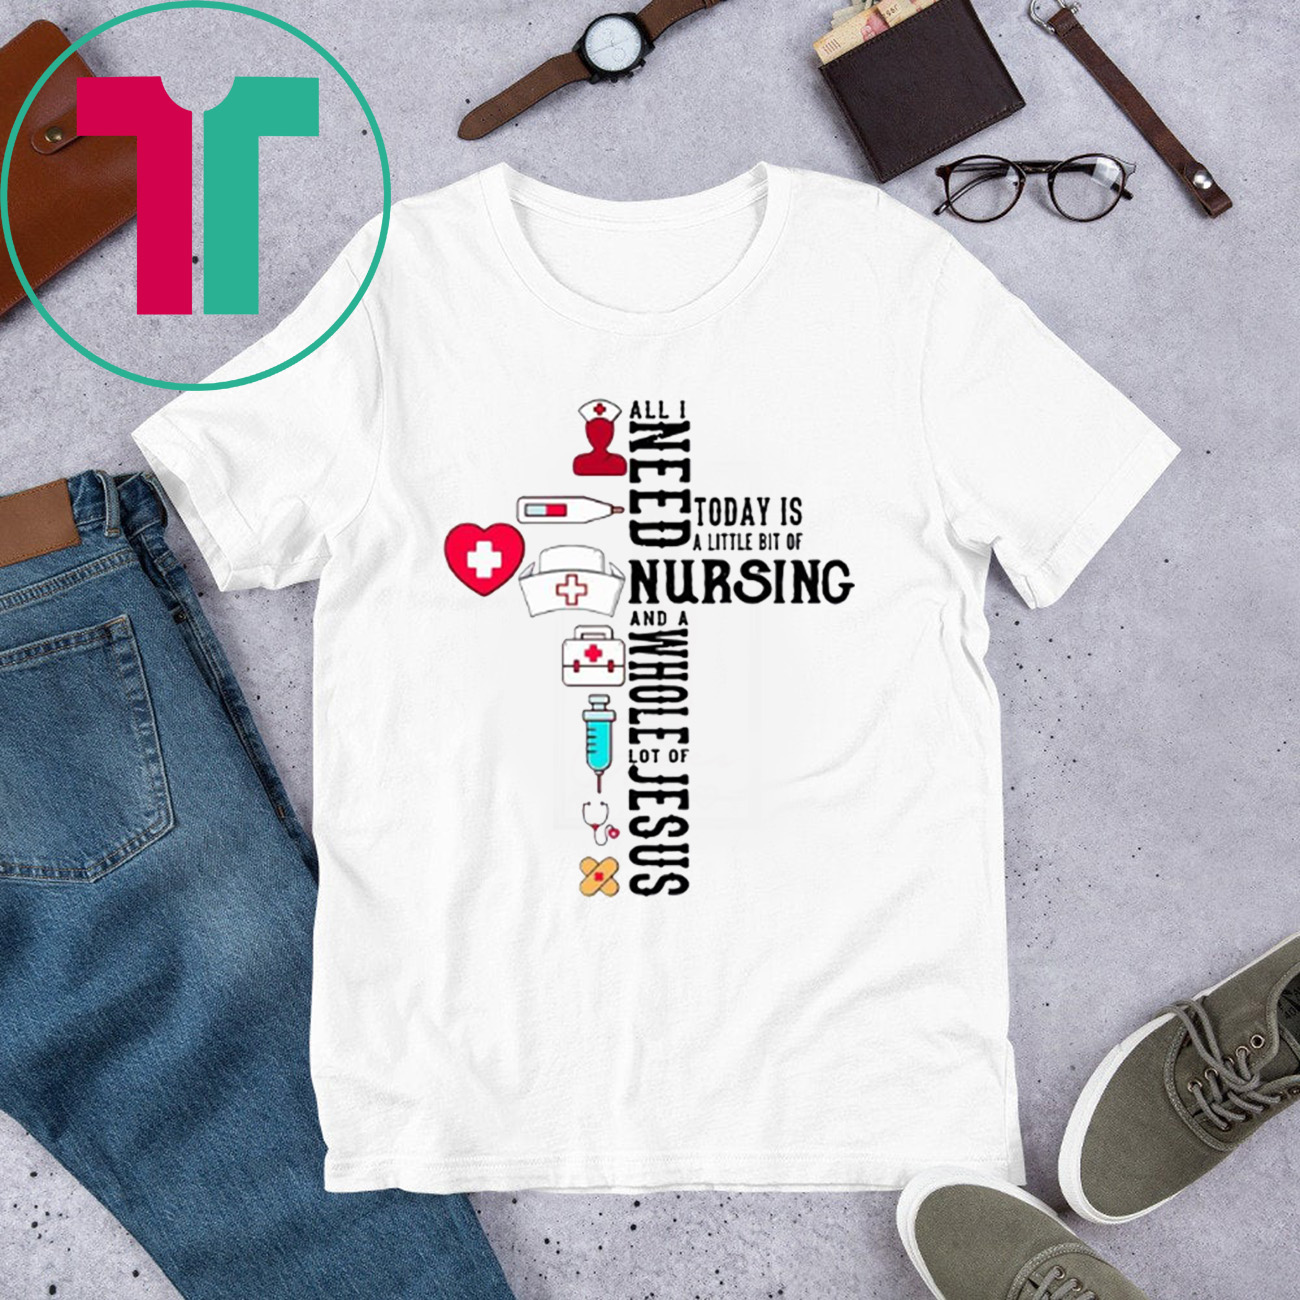 All I Need Today Is A Little Bit Of Nursing And A Whole Lot Of Jesus T-Shirt